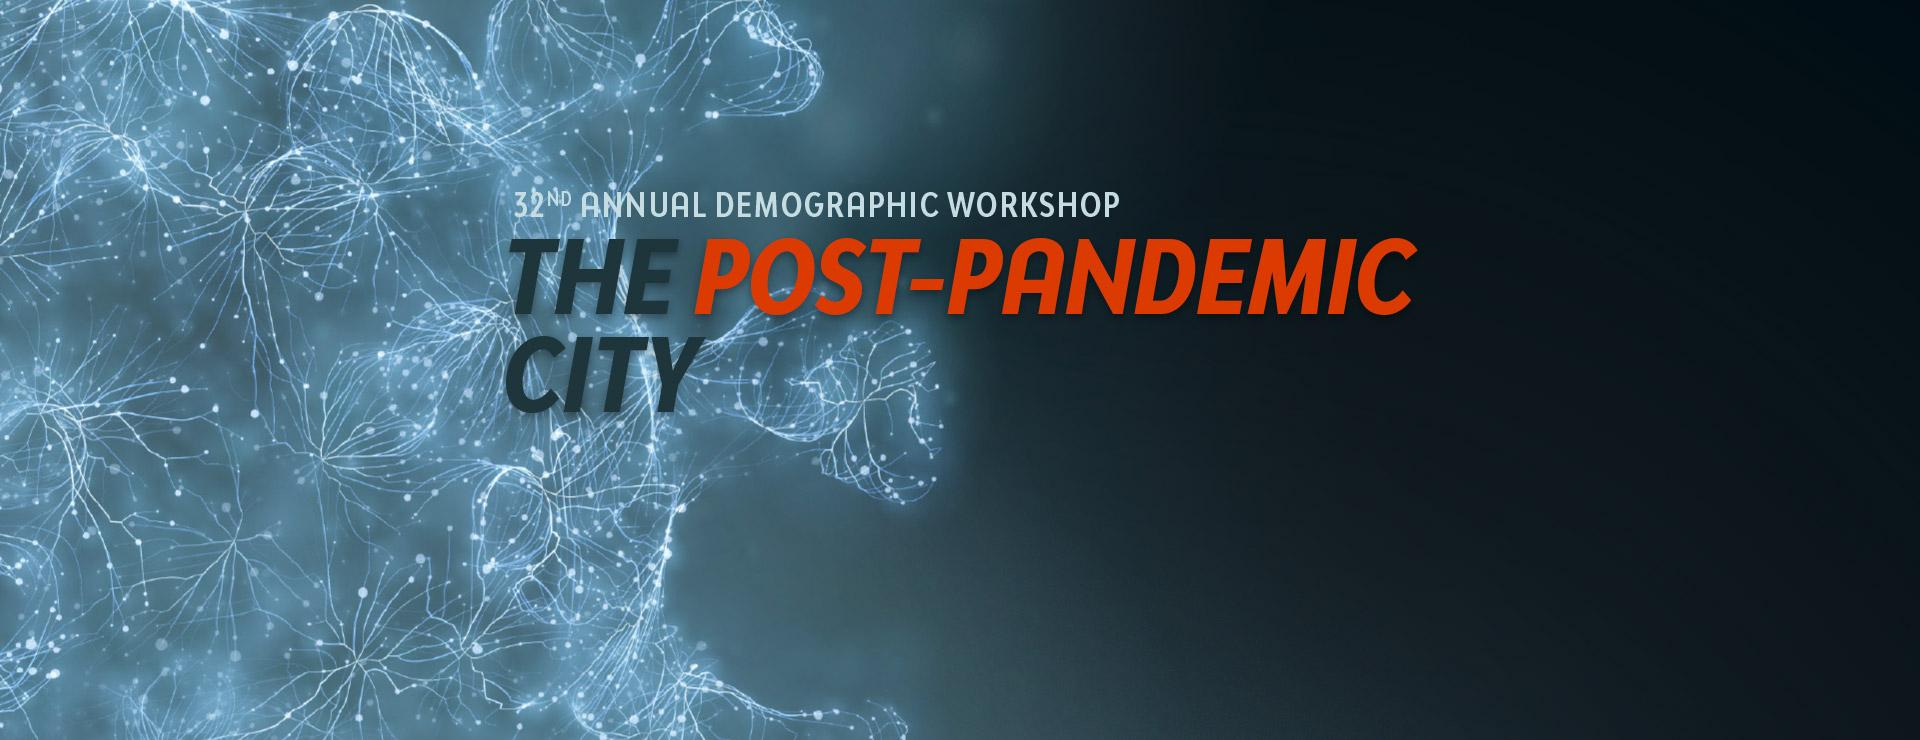 32nd Annual Demographic Workshop- The Post Pandemic City